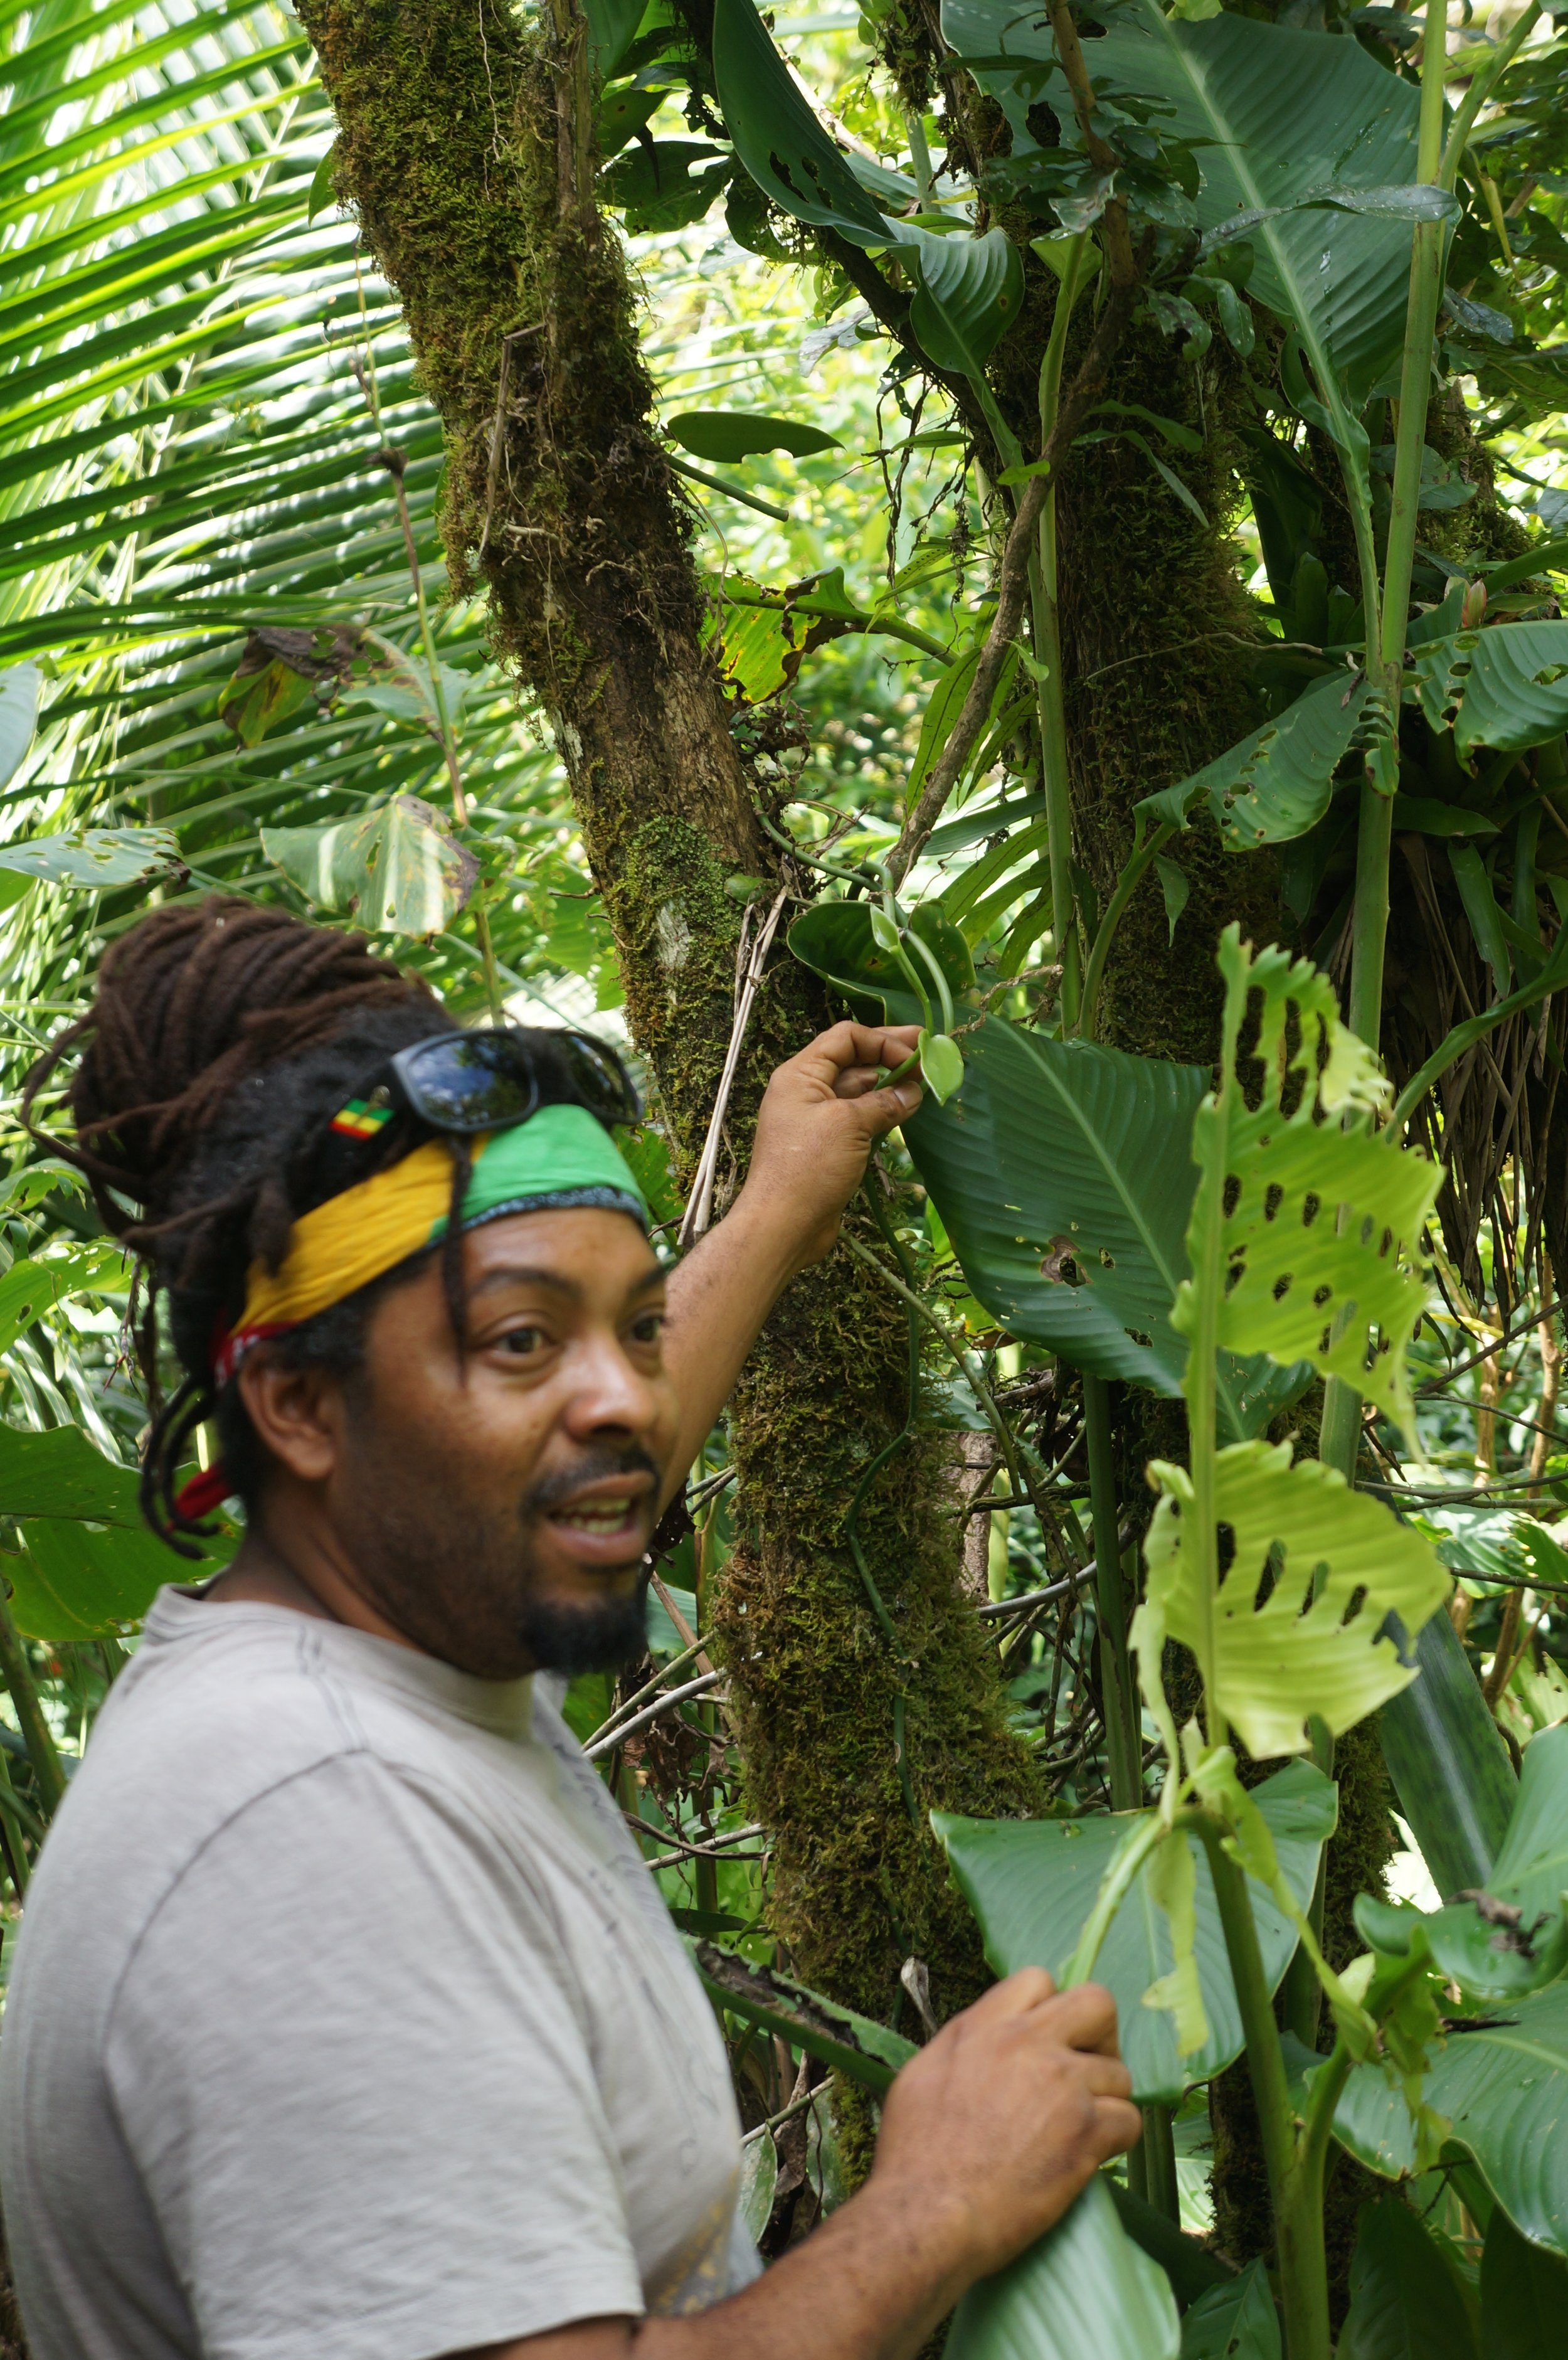 On a medicinal plant tour in the jungles, Cost Rica. Copyright Service By Magie.